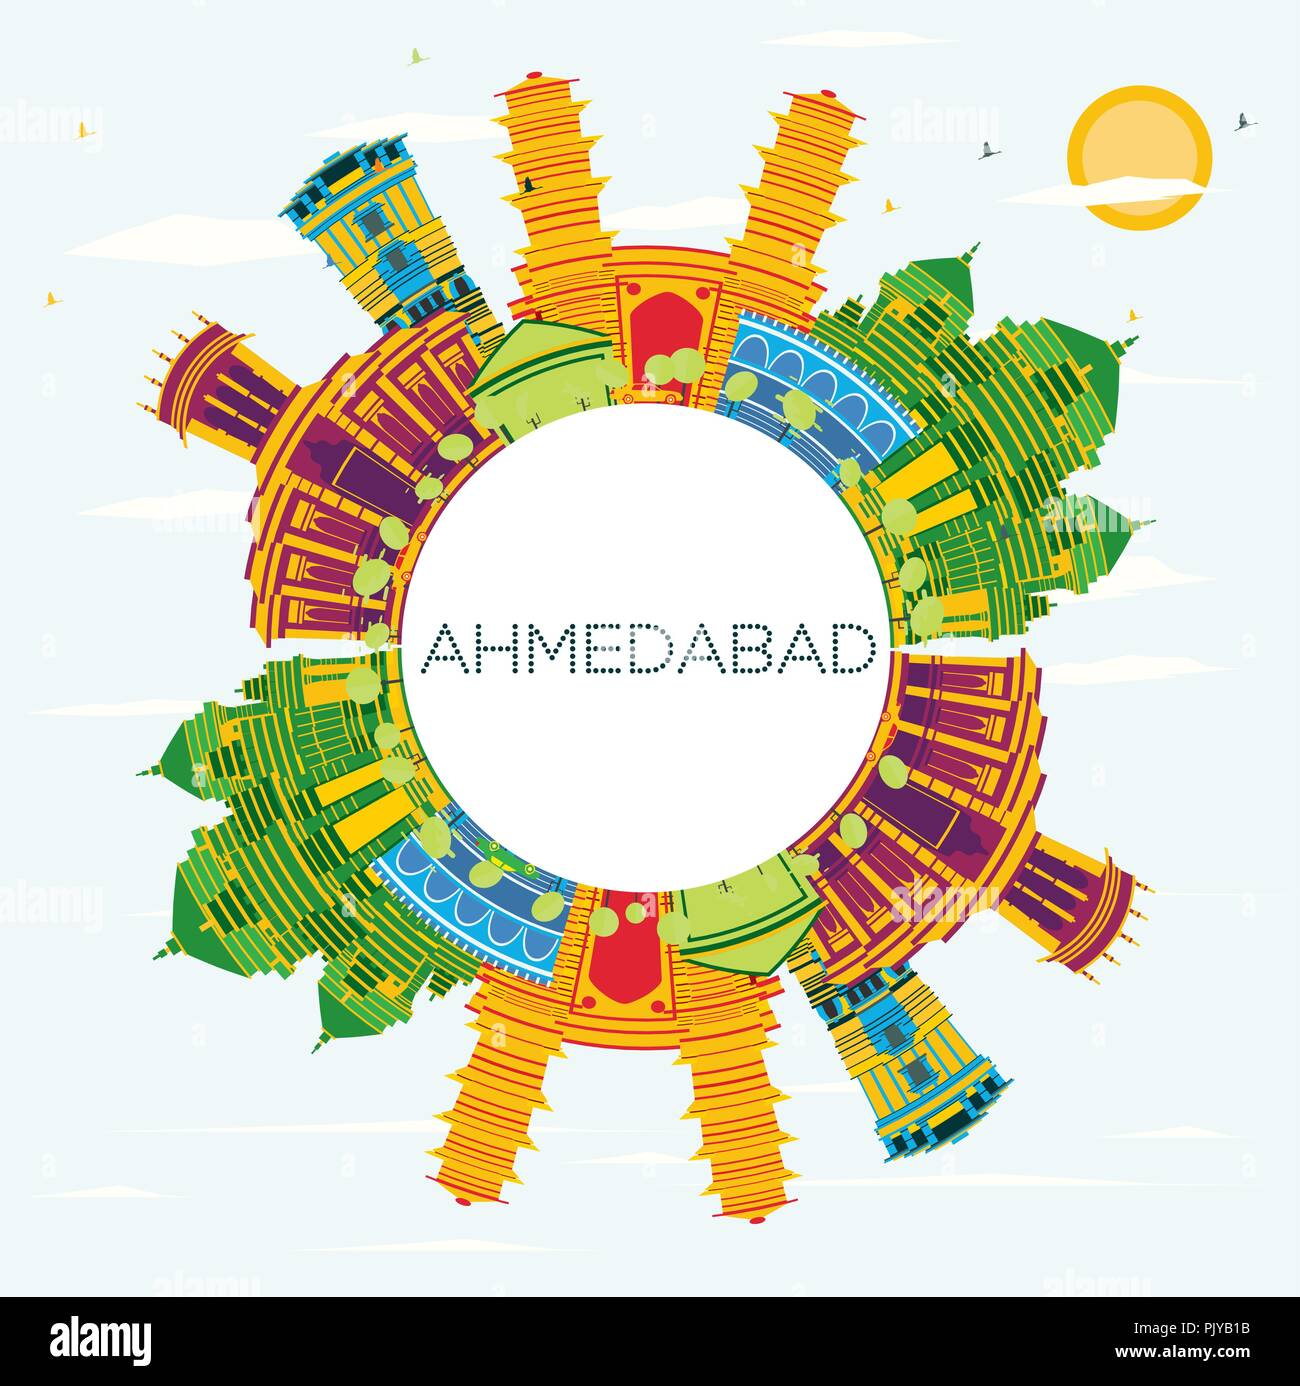 Ahmedabad India City Skyline with Color Buildings, Blue Sky and Copy Space. Vector Illustration. - Stock Vector